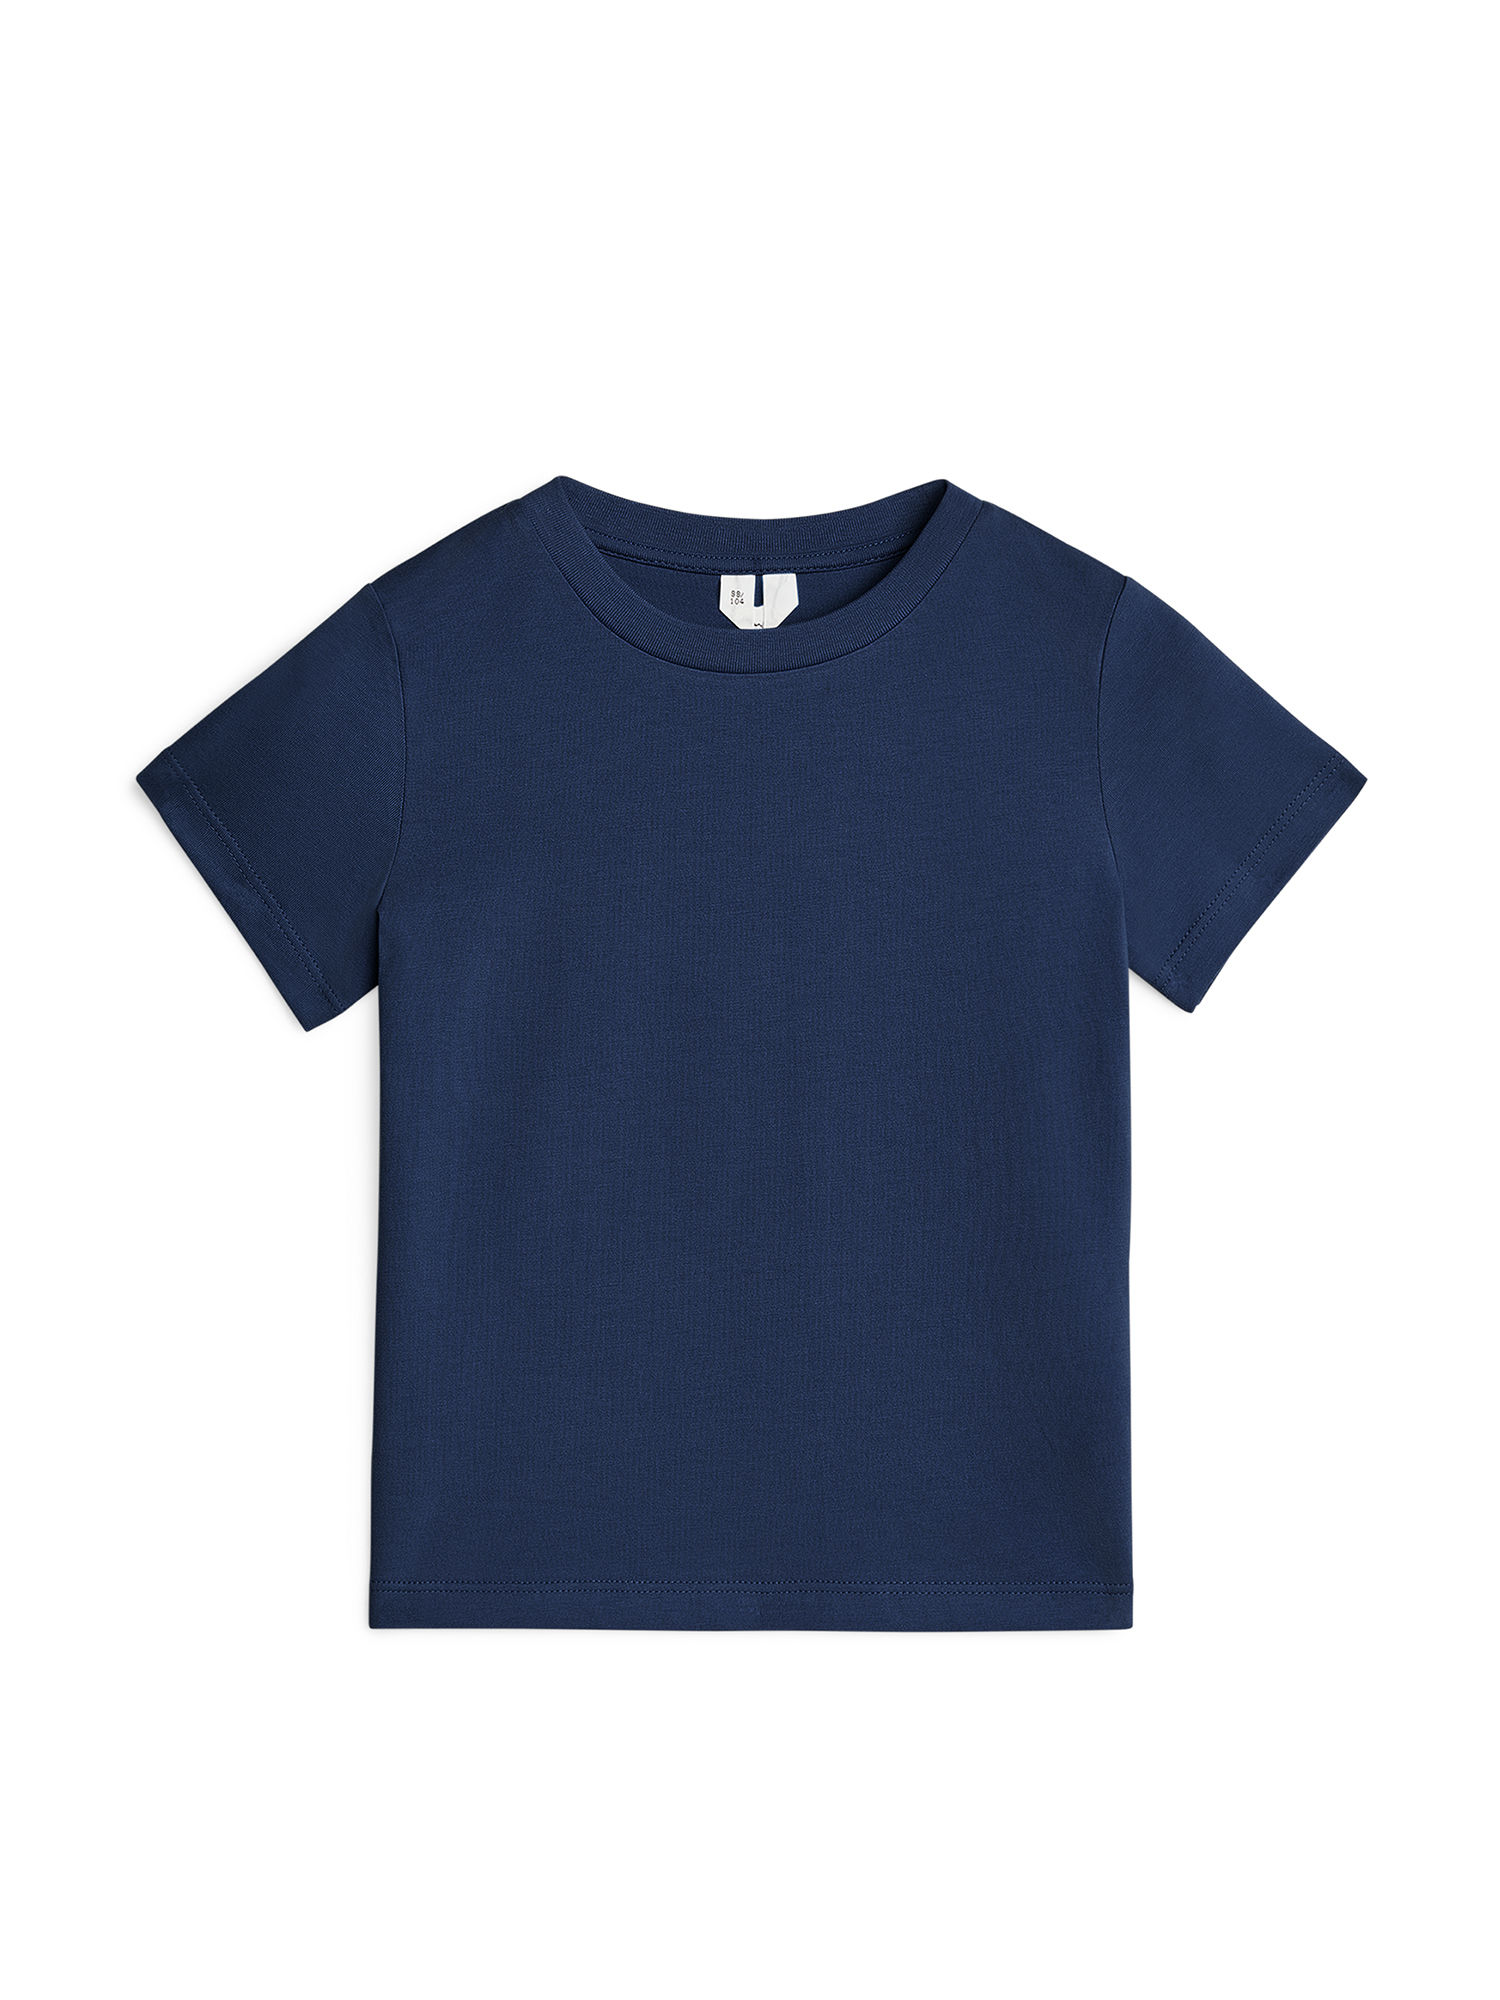 Fabric Swatch image of Arket organic cotton crew-neck t-shirt in blue